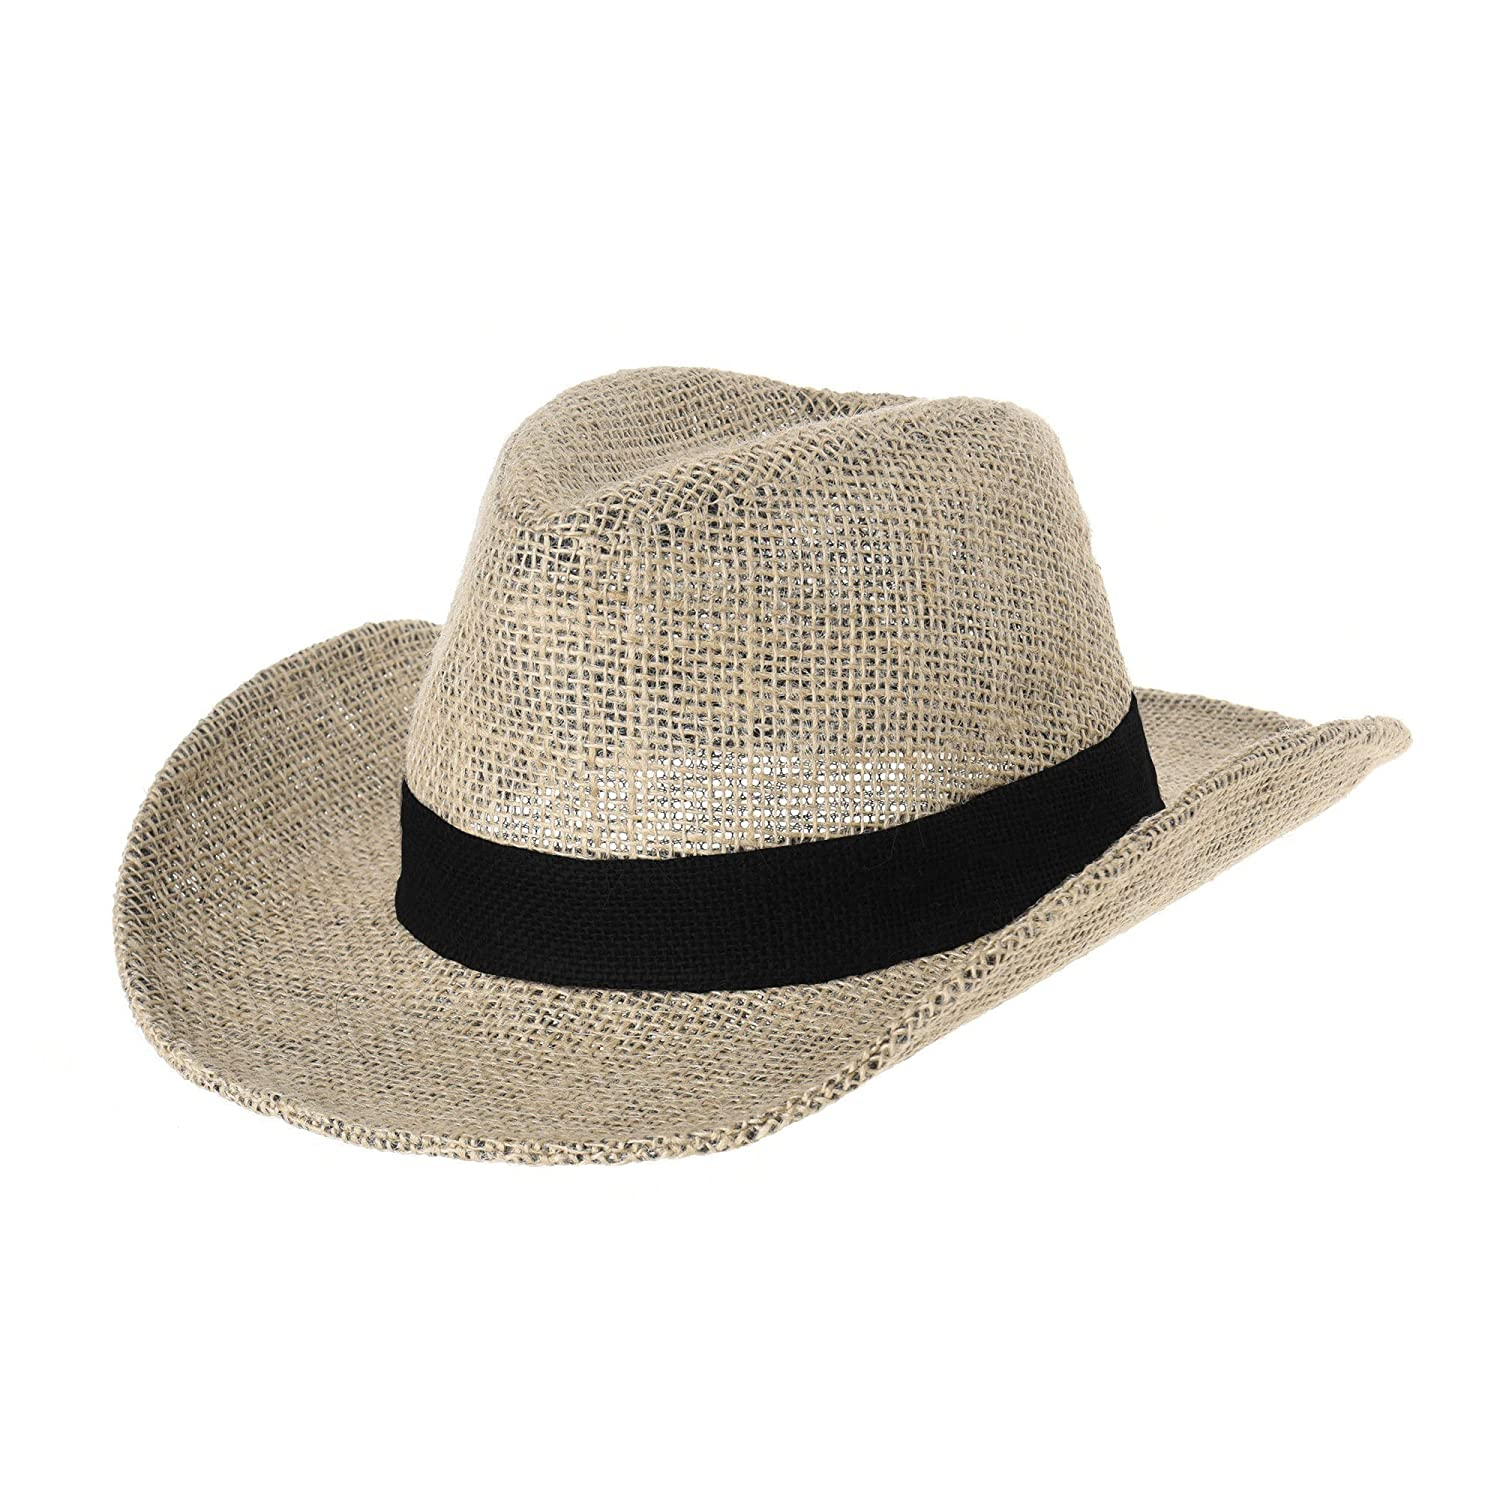 WITHMOONS Cowboy Cappello a tesa larga Western Cowboy Hat Paper Straw Linen Fedora Panama Hat DW8659 DW8659Beige